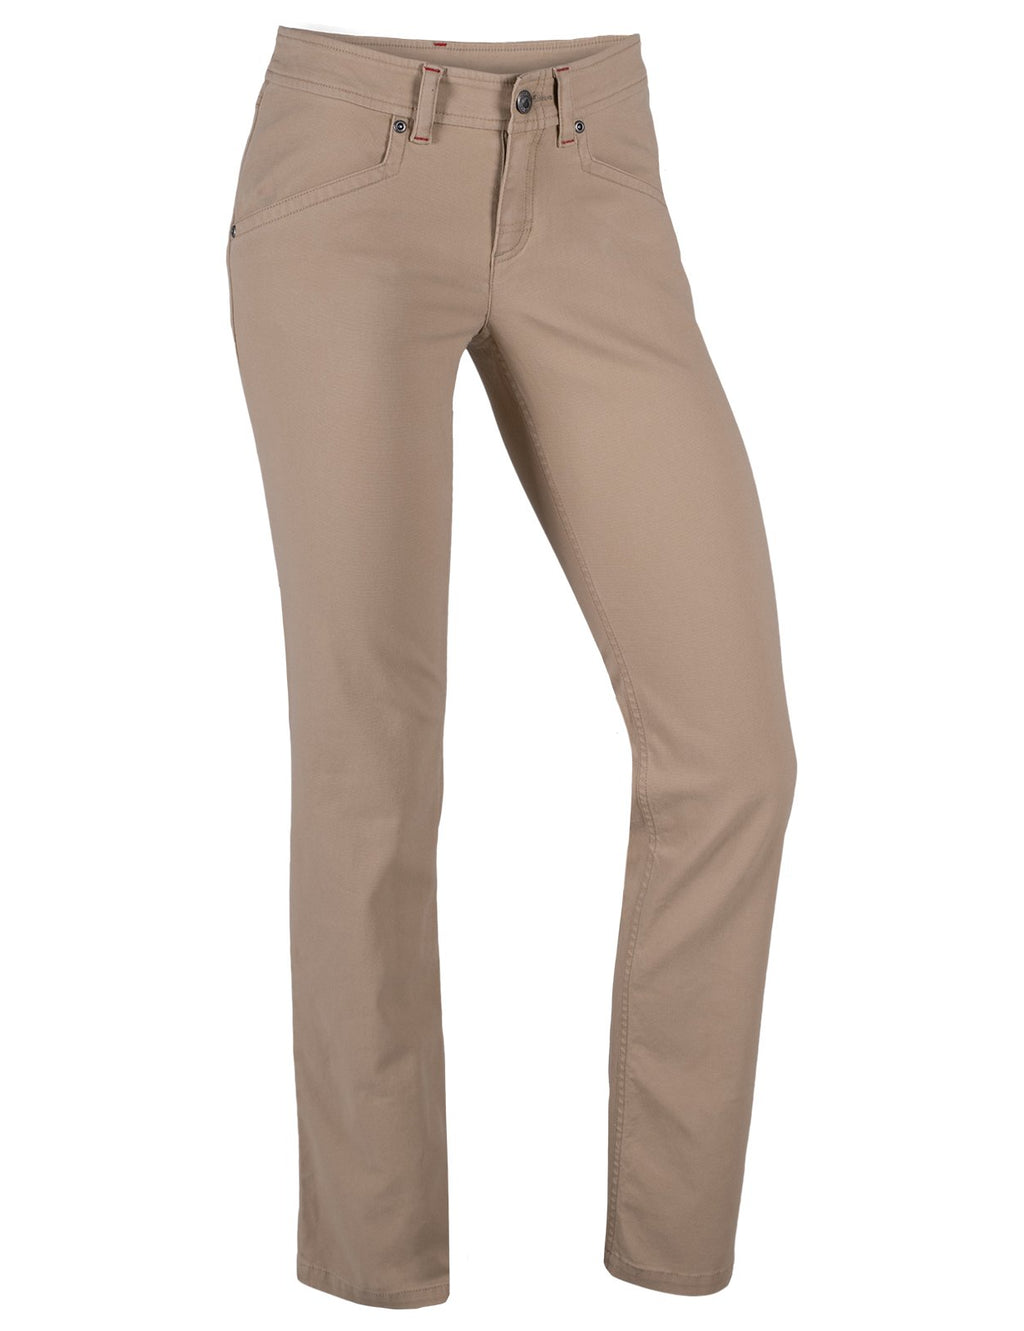 Front view of the women's Camber Rove hiking pant